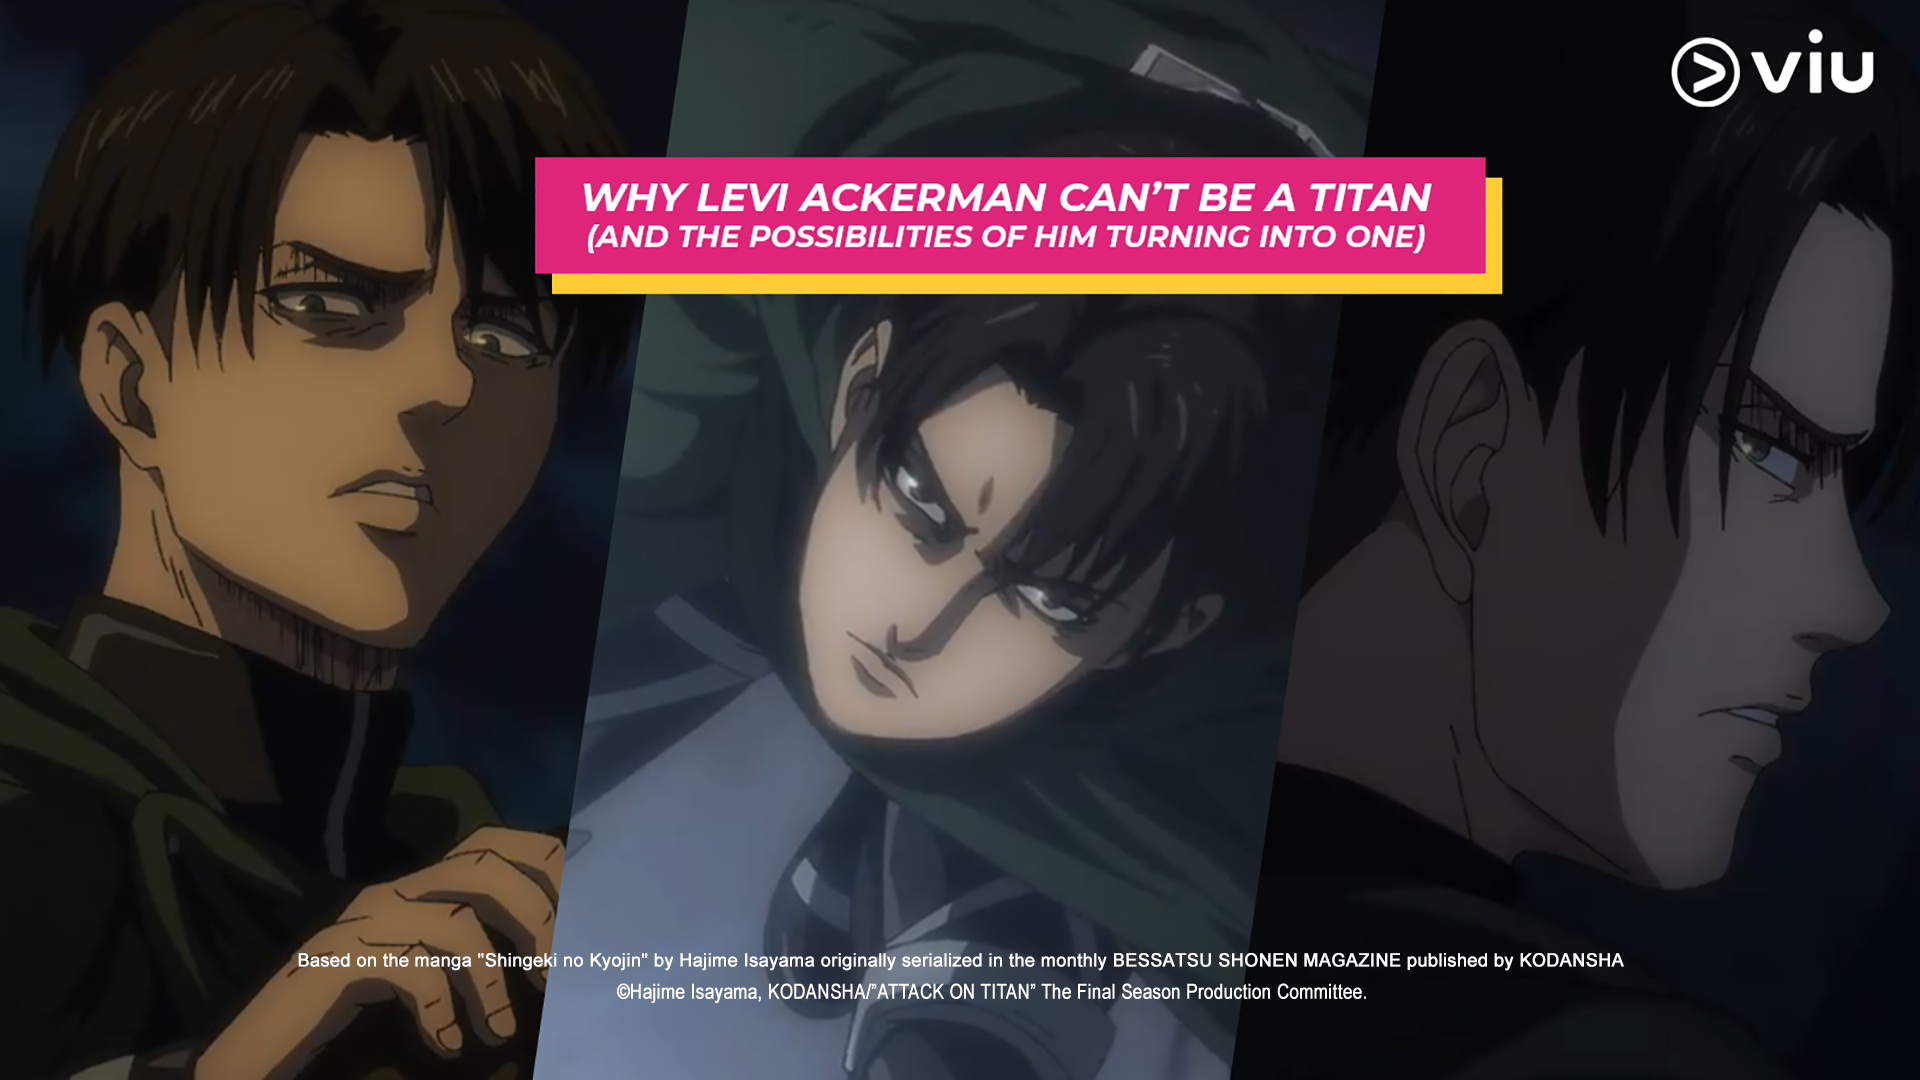 Attack On Titan: Why Levi Ackerman Can't Be A Titan (And The Possibilities Of Him Turning Into One)